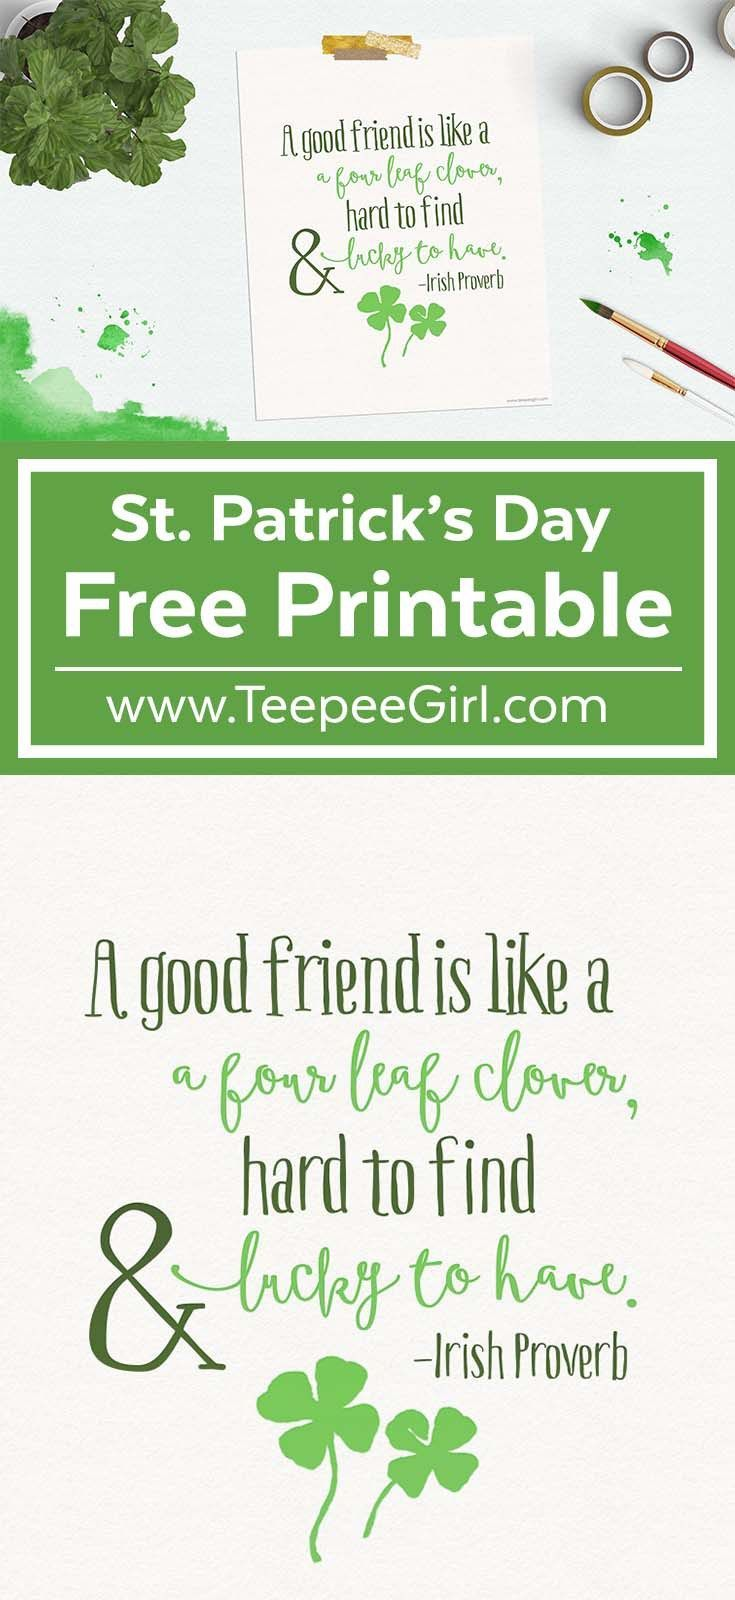 "Looking for a cute way to decorate for St. Patrick's Day? Or an inexpensive but darling gift to give a friend? Download this free St. Patrick's Day printable that says ""A good friend is like a four leaf clover, hard to find, lucky to have."" www.TeepeeGirl.com"